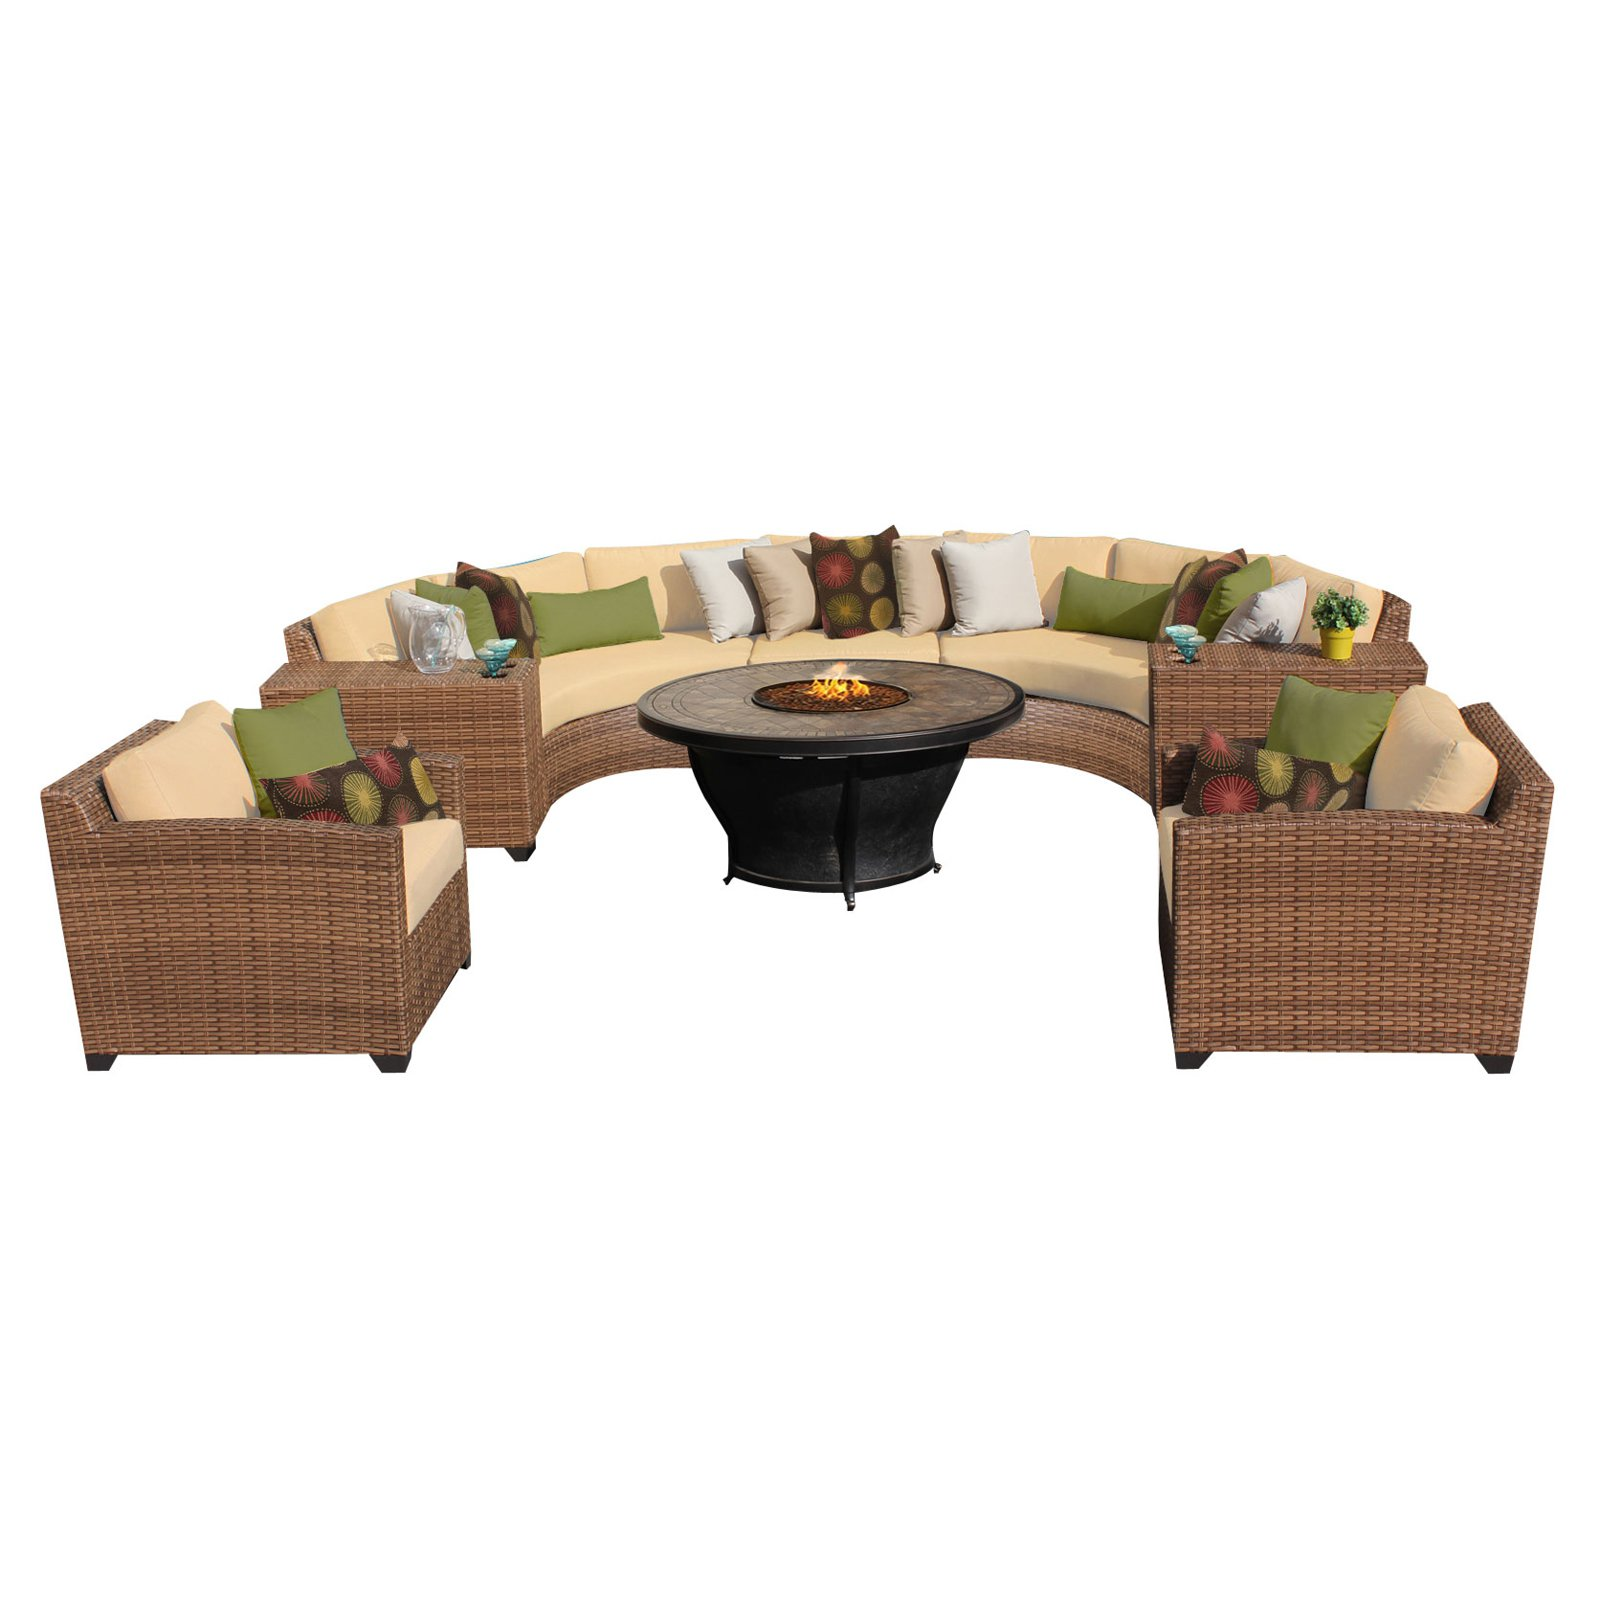 TK Classics Laguna Wicker 8 Piece Patio Conversation Set with Firepit Table and 2 Sets of Cushion Covers by TK Classics